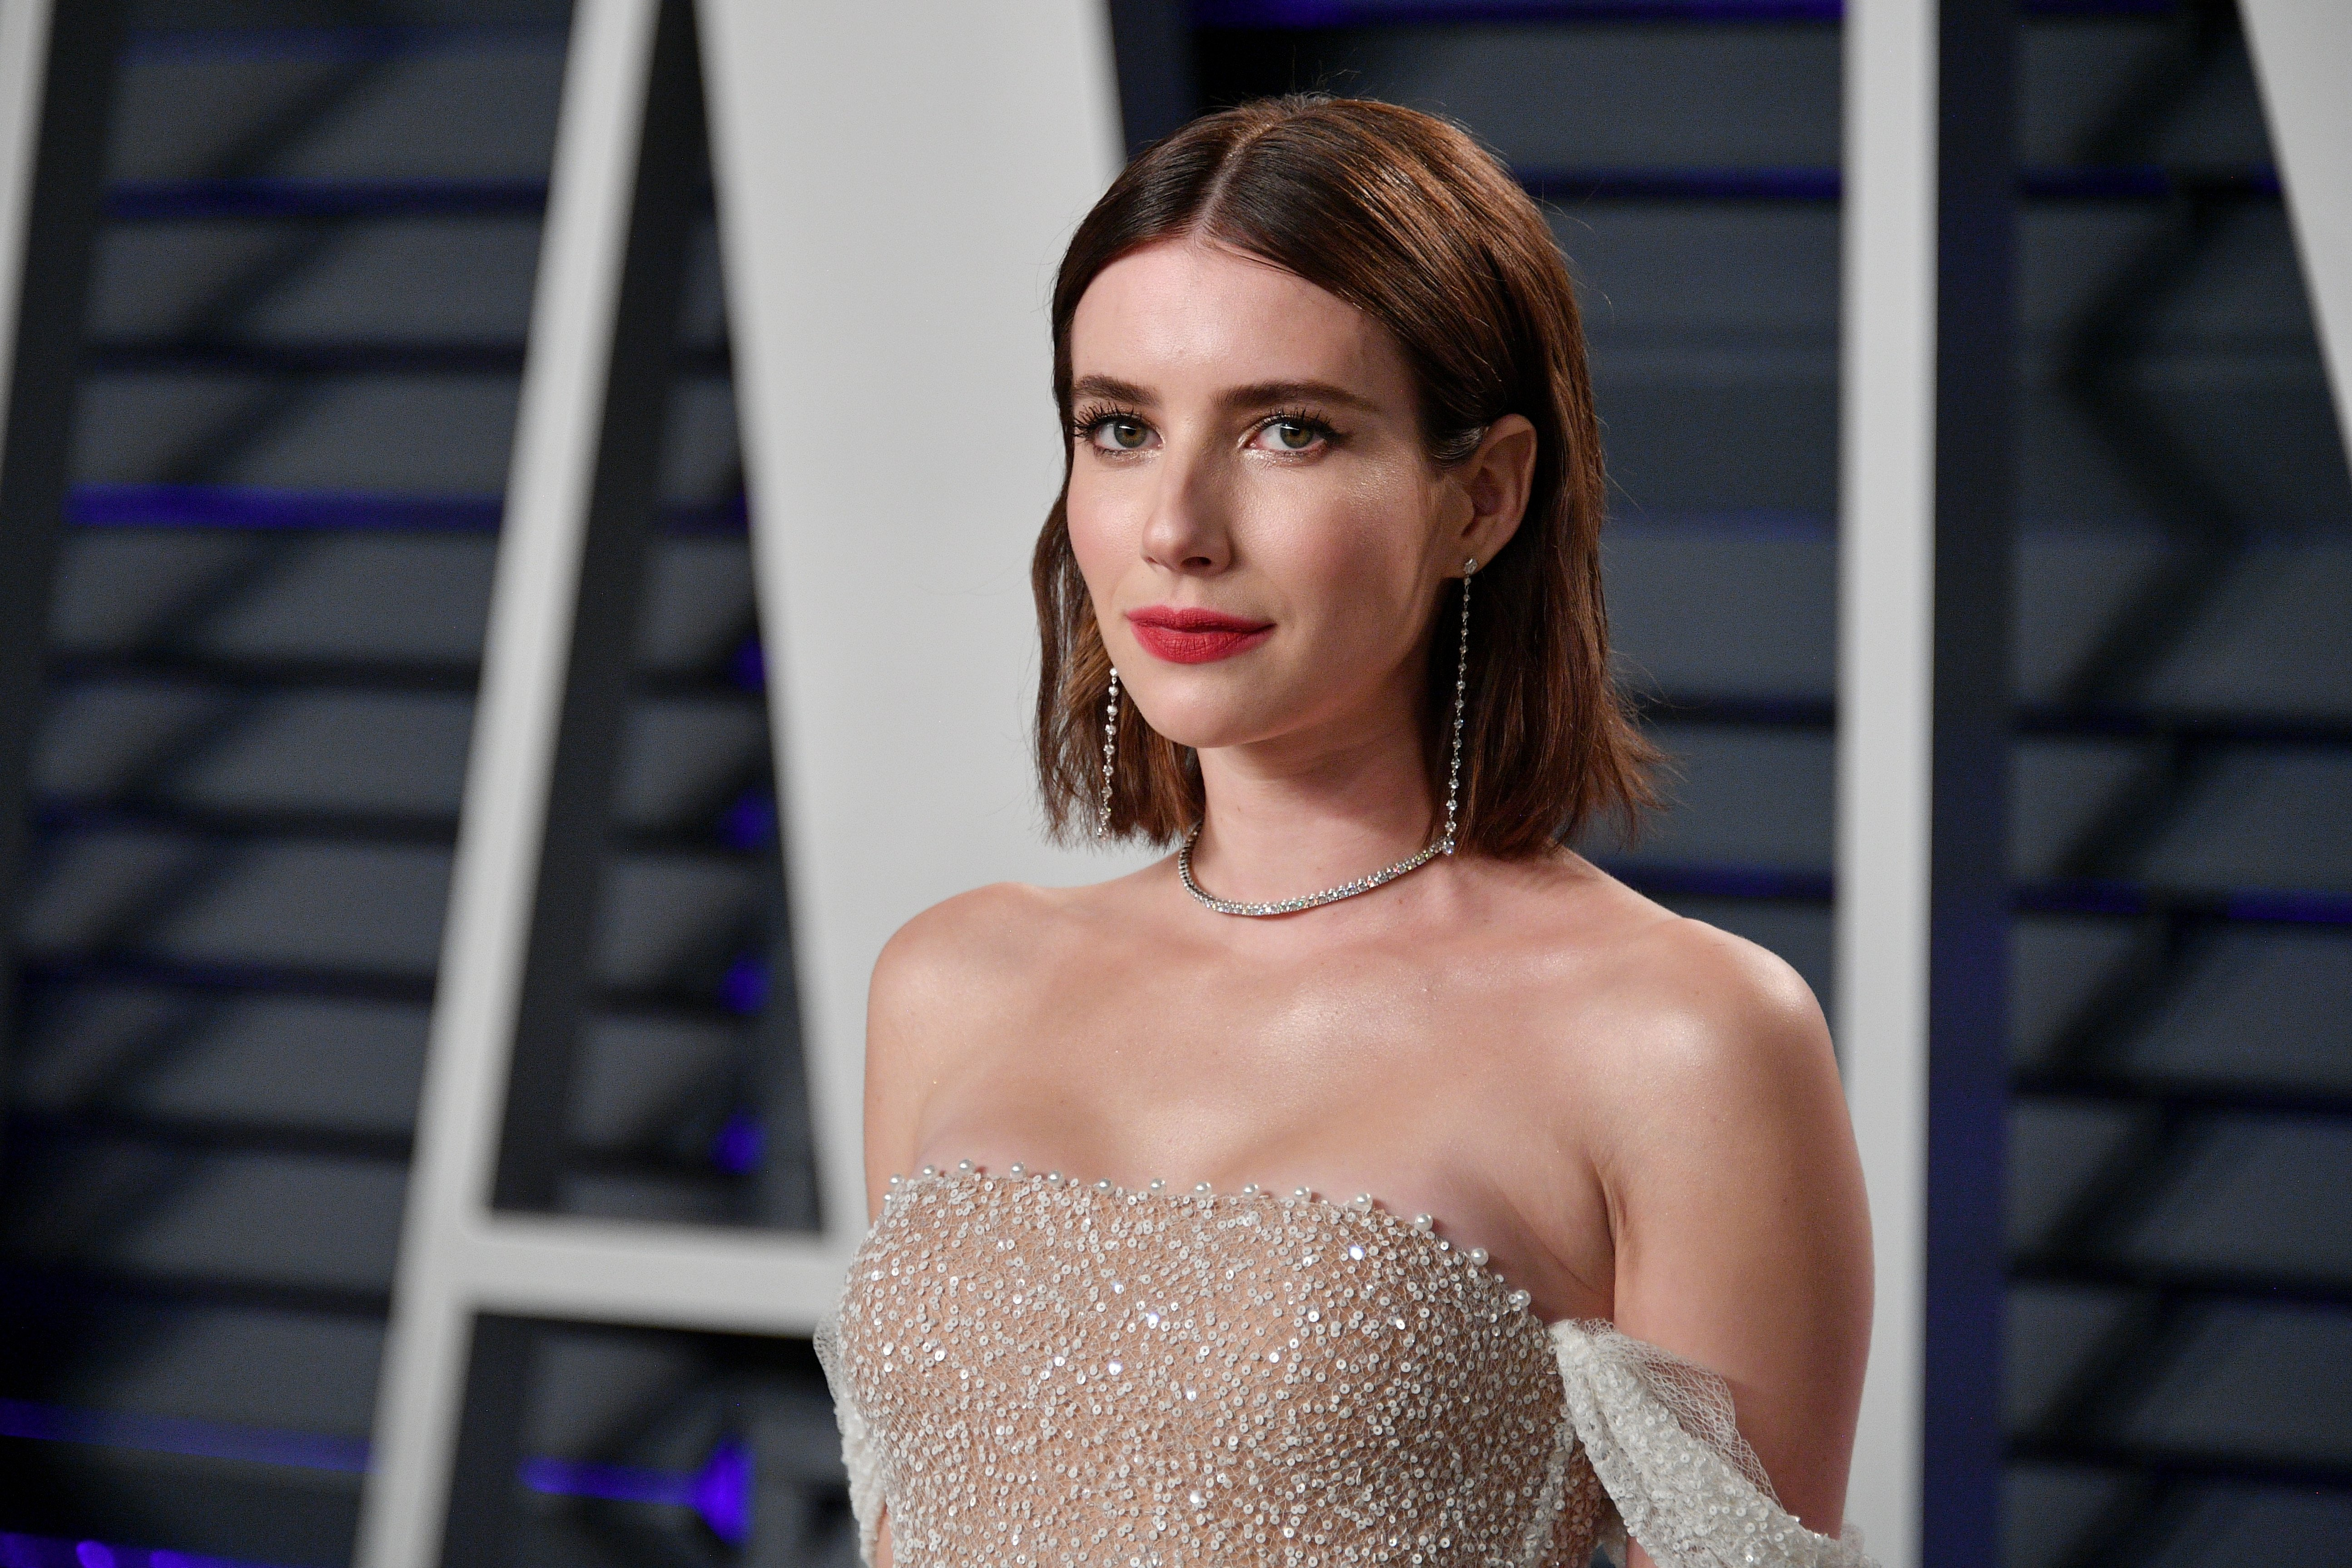 Emma Roberts attends the Vanity Fair Oscar Party in Beverly Hills, California on February 24, 2019 | Photo: Getty Images